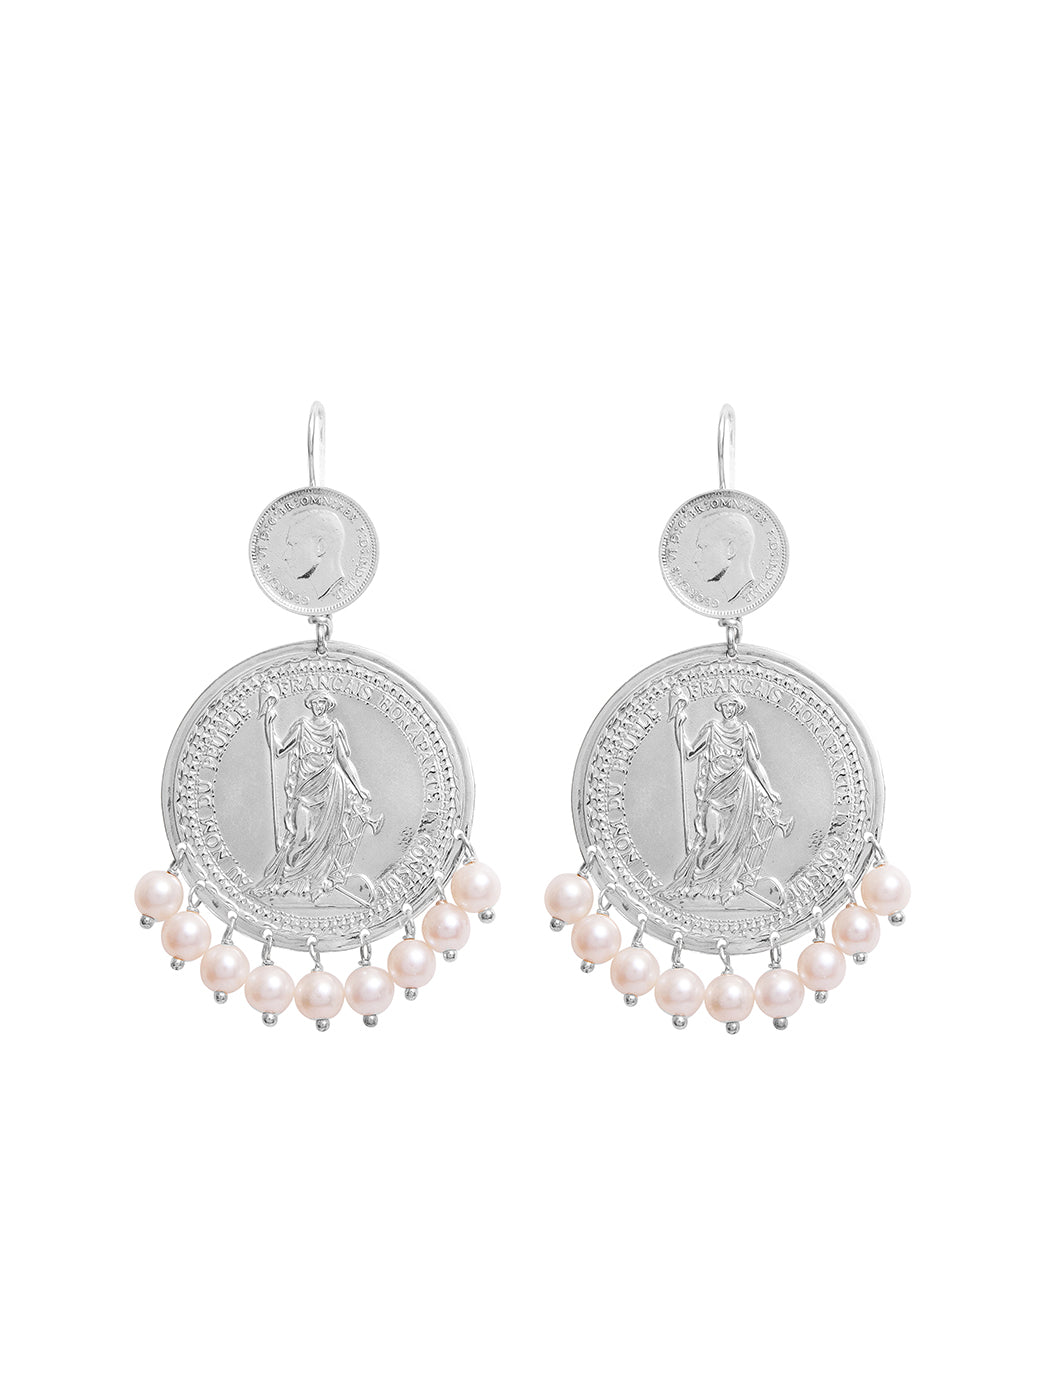 Fiorina Jewellery Marrakesh Earrings White Pearl